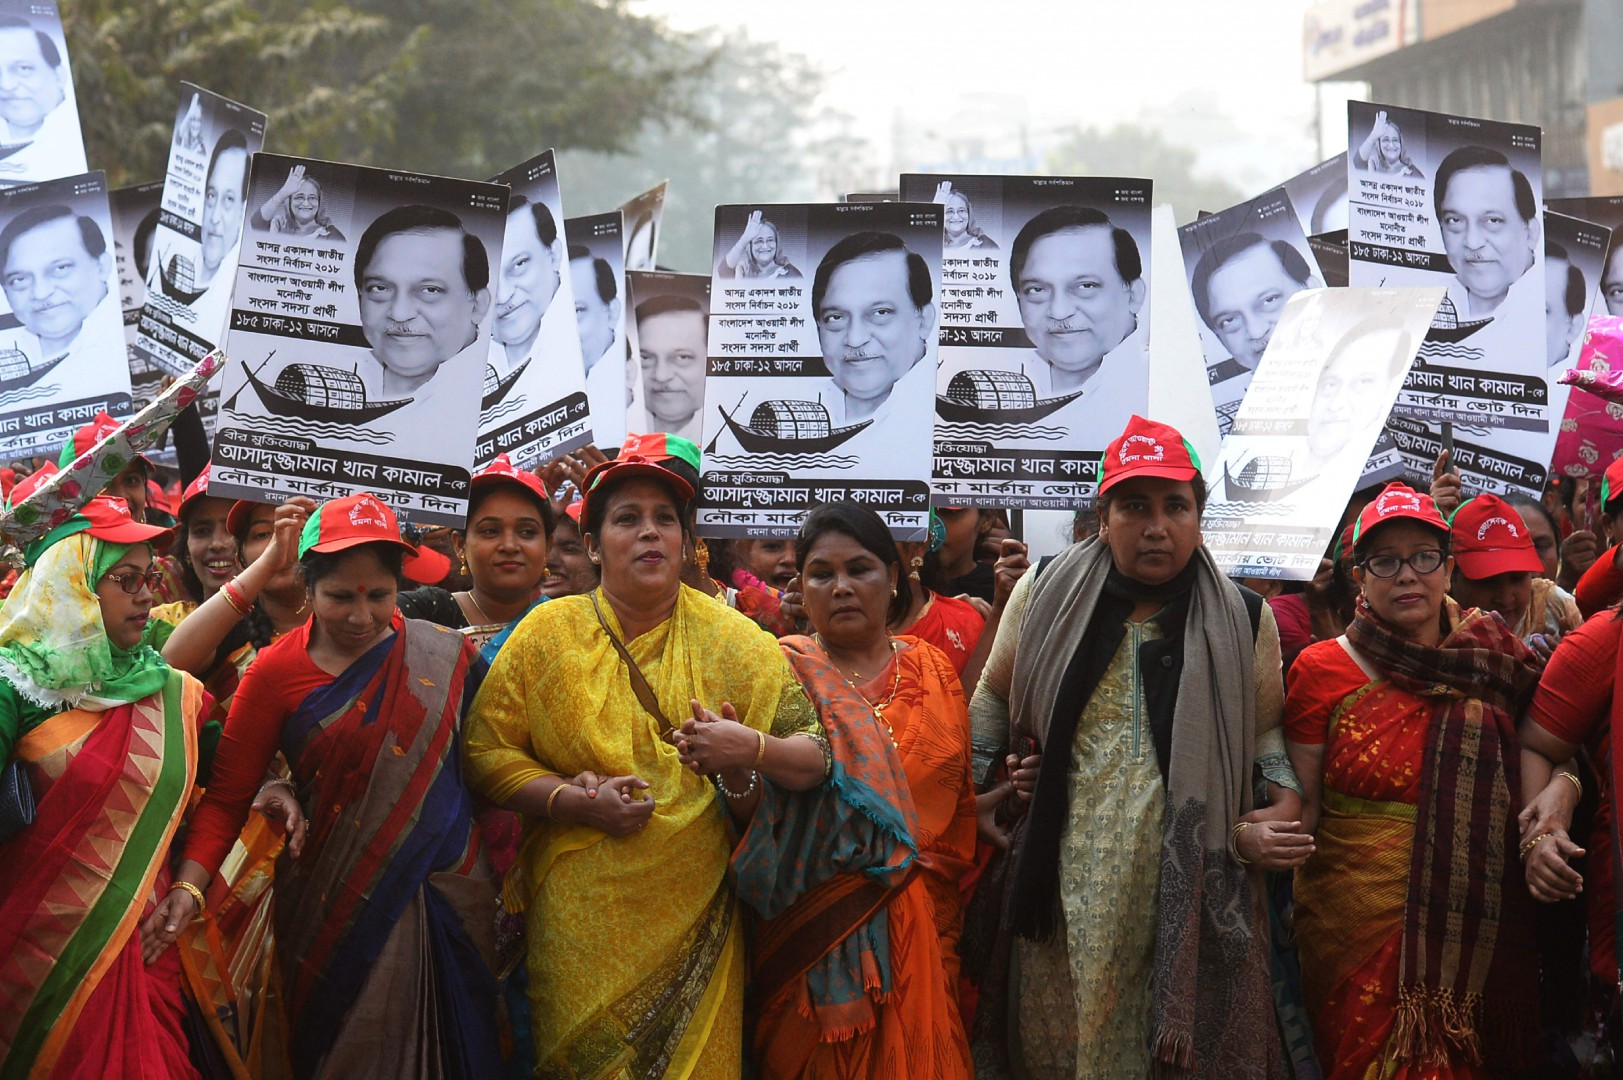 Supporters of Bangladesh Awami League march along a street as they take part in a rally ahead of December 30 general election vote, in Dhaka on December 27, 2018. - Bangladesh's deadly election campaign entered a final full day on December 27 with followers of Prime Minister Sheikh Hasina parading in the streets while her opponents insisted the vote would not be free and fair. Both sides launched new salvoes in their war of words ahead of December 30 polling. (Photo by Munir UZ ZAMAN / AFP)